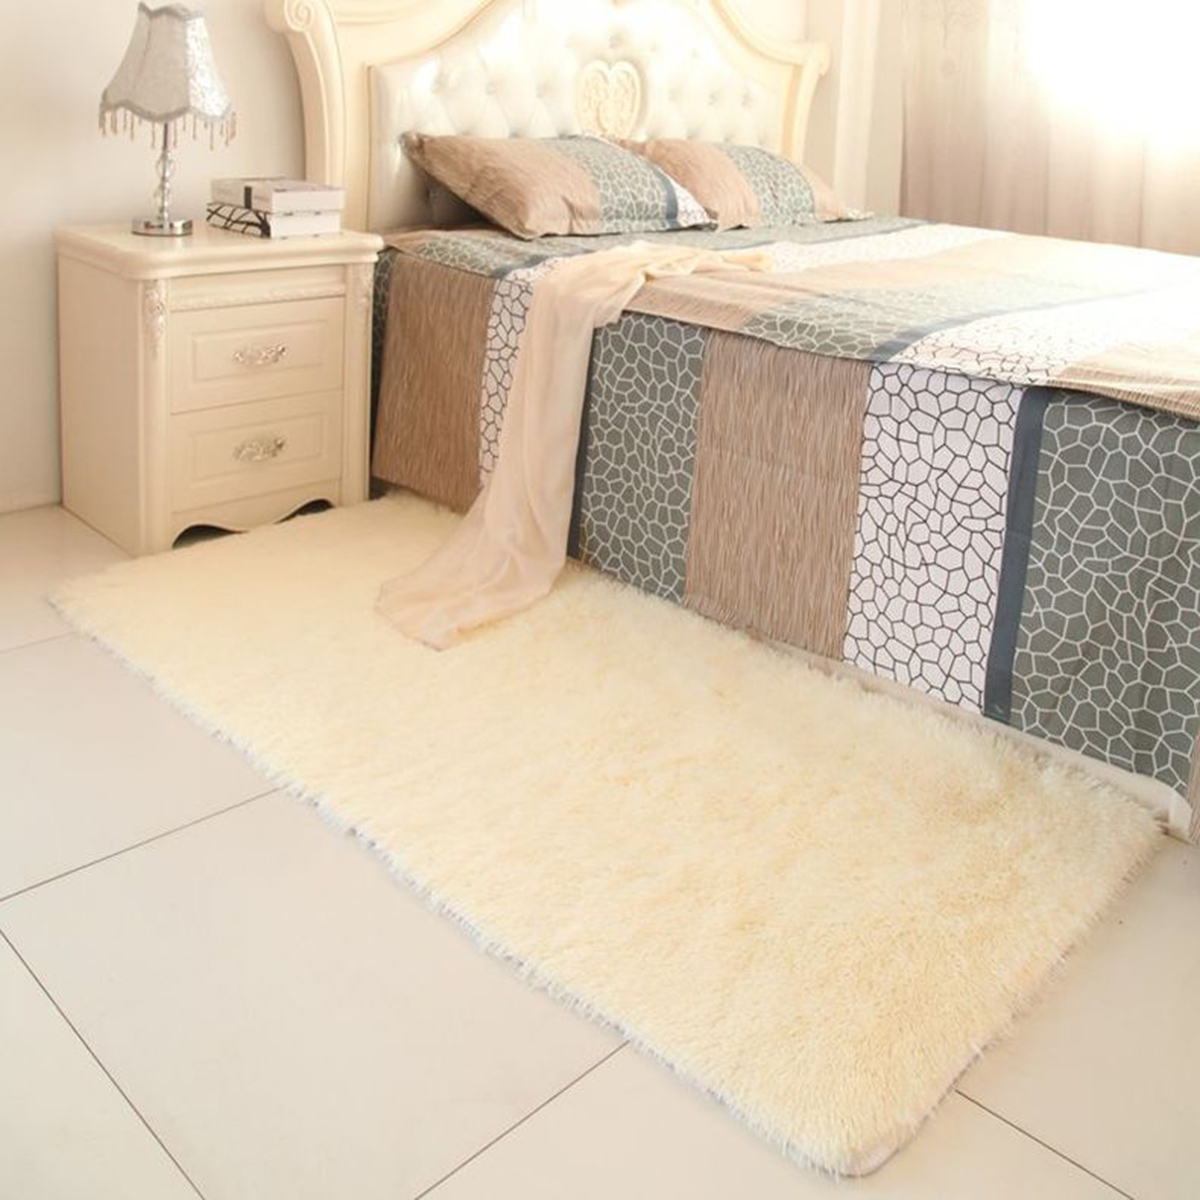 Carpet In A Bathroom: 60×90cm Non-slip Carpet Living Room Long Wool Bathroom Mat